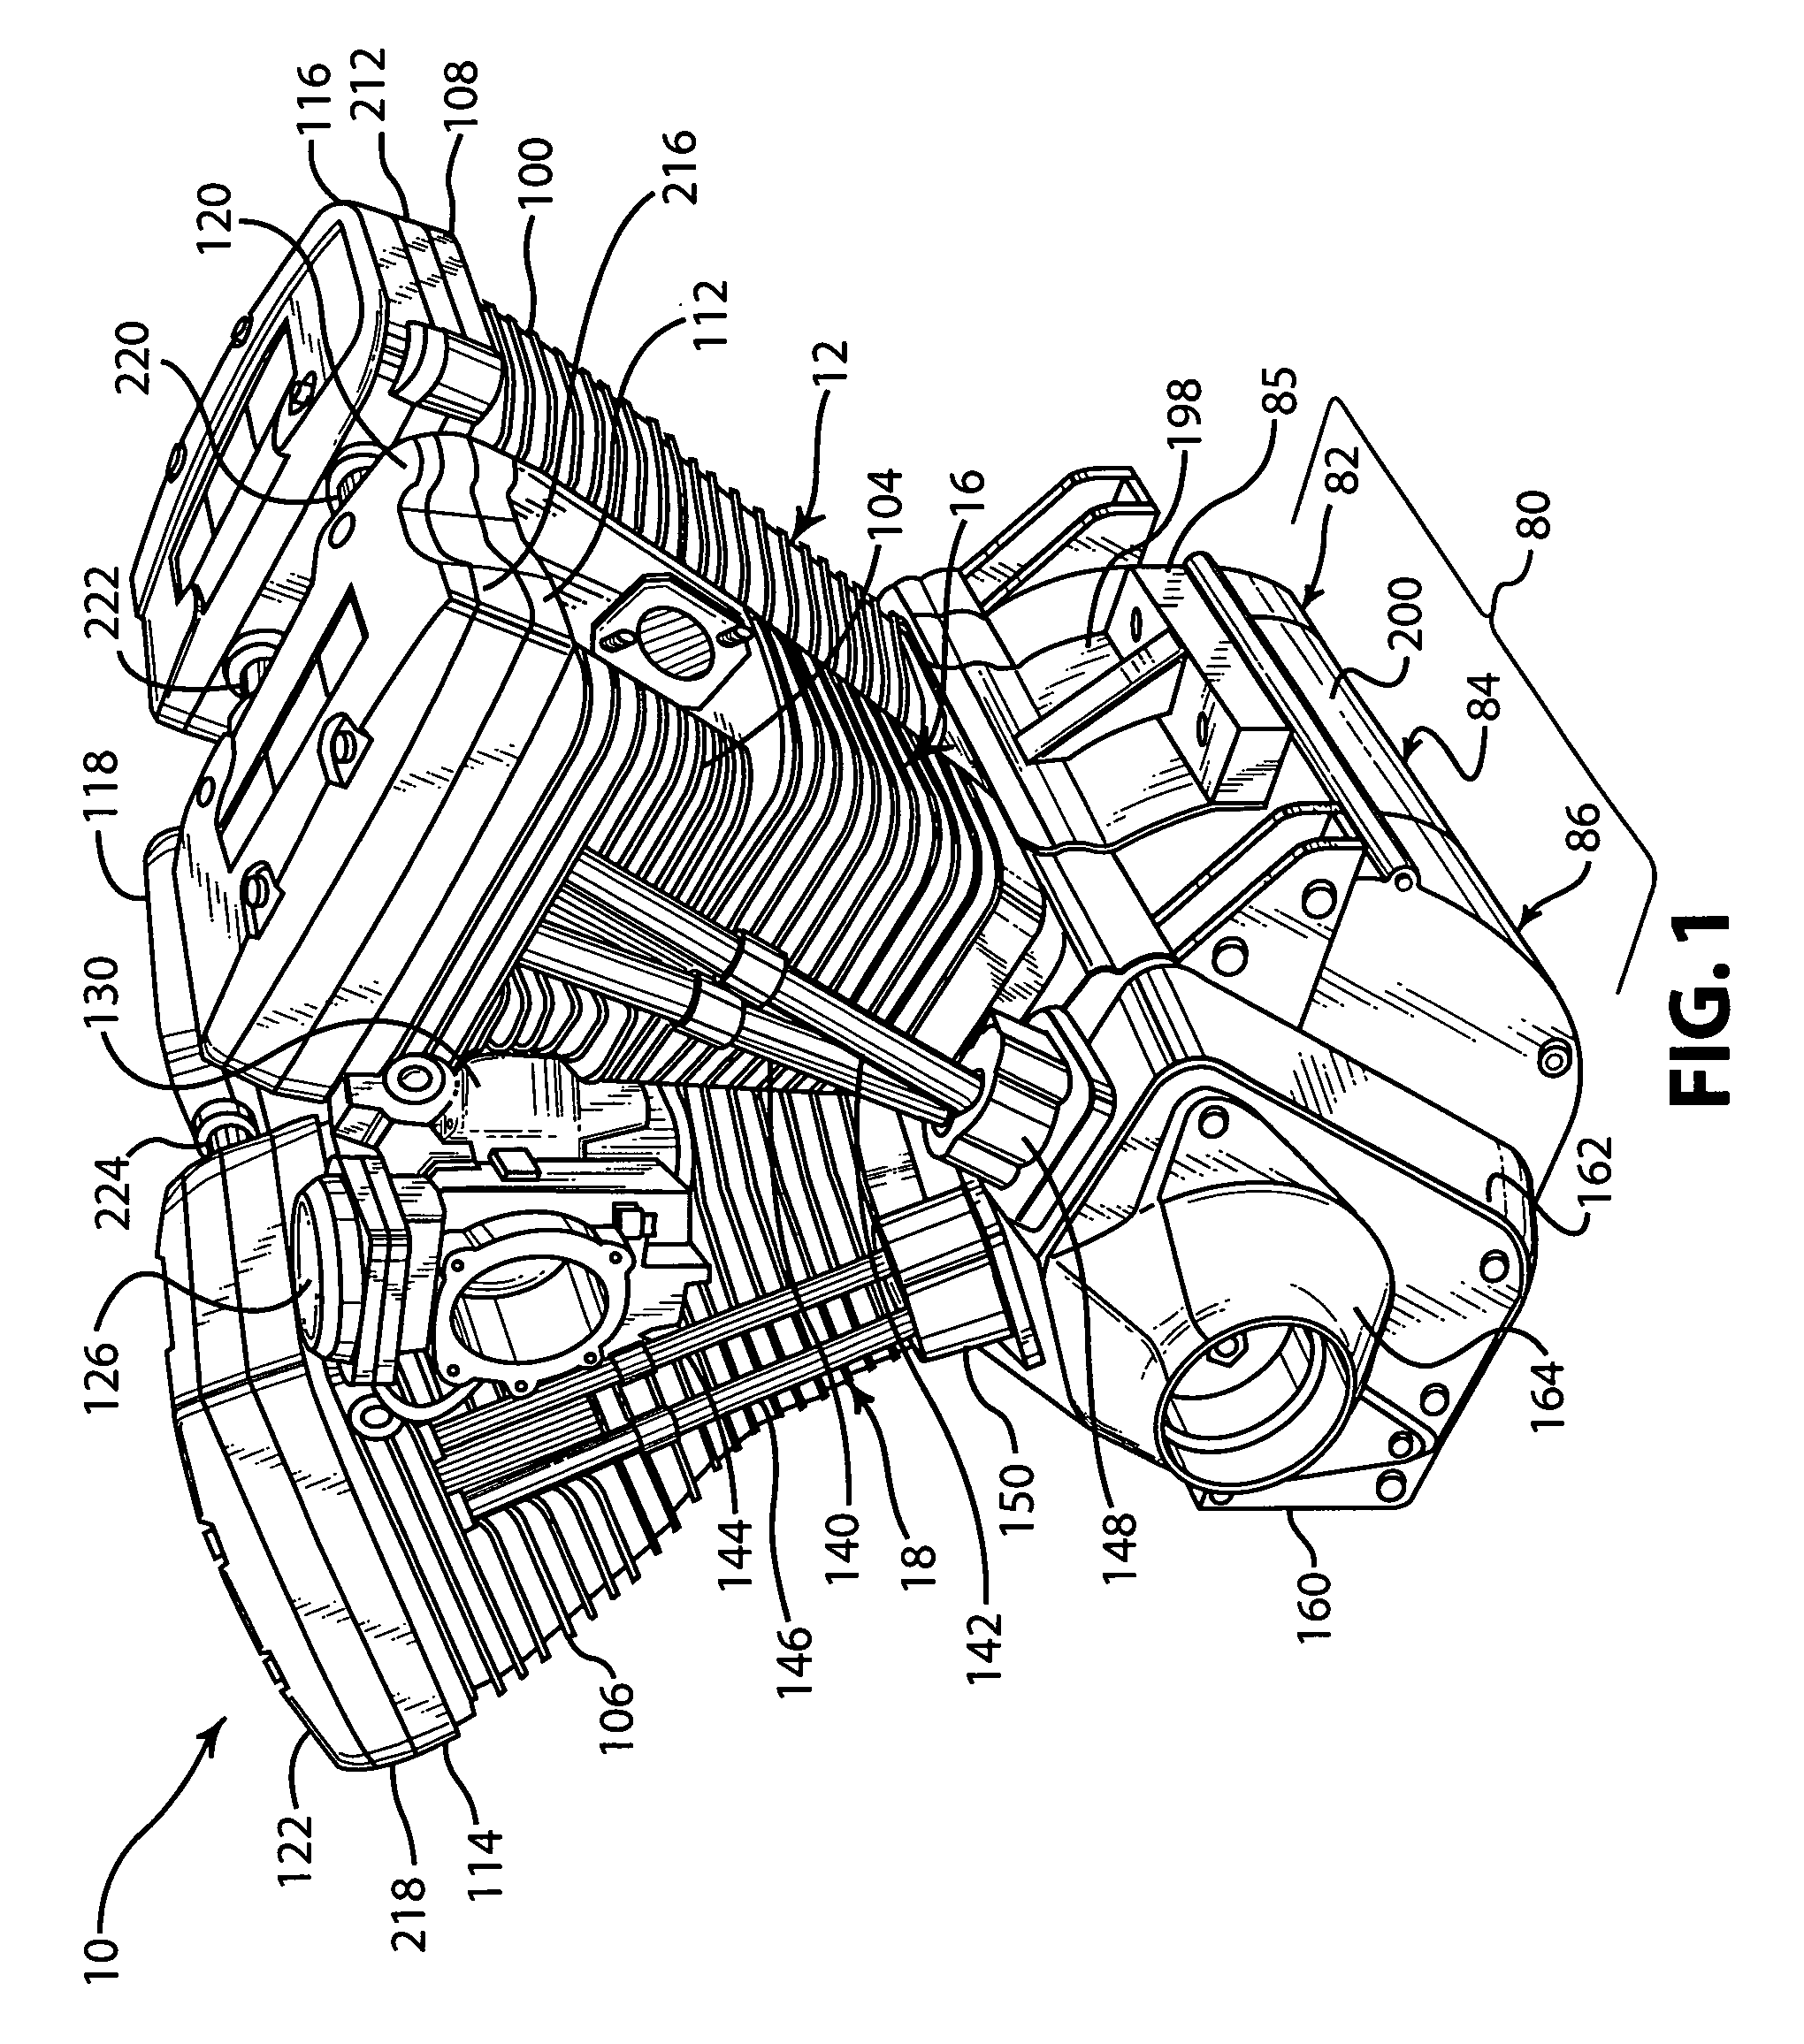 harley shovelhead engine drawings